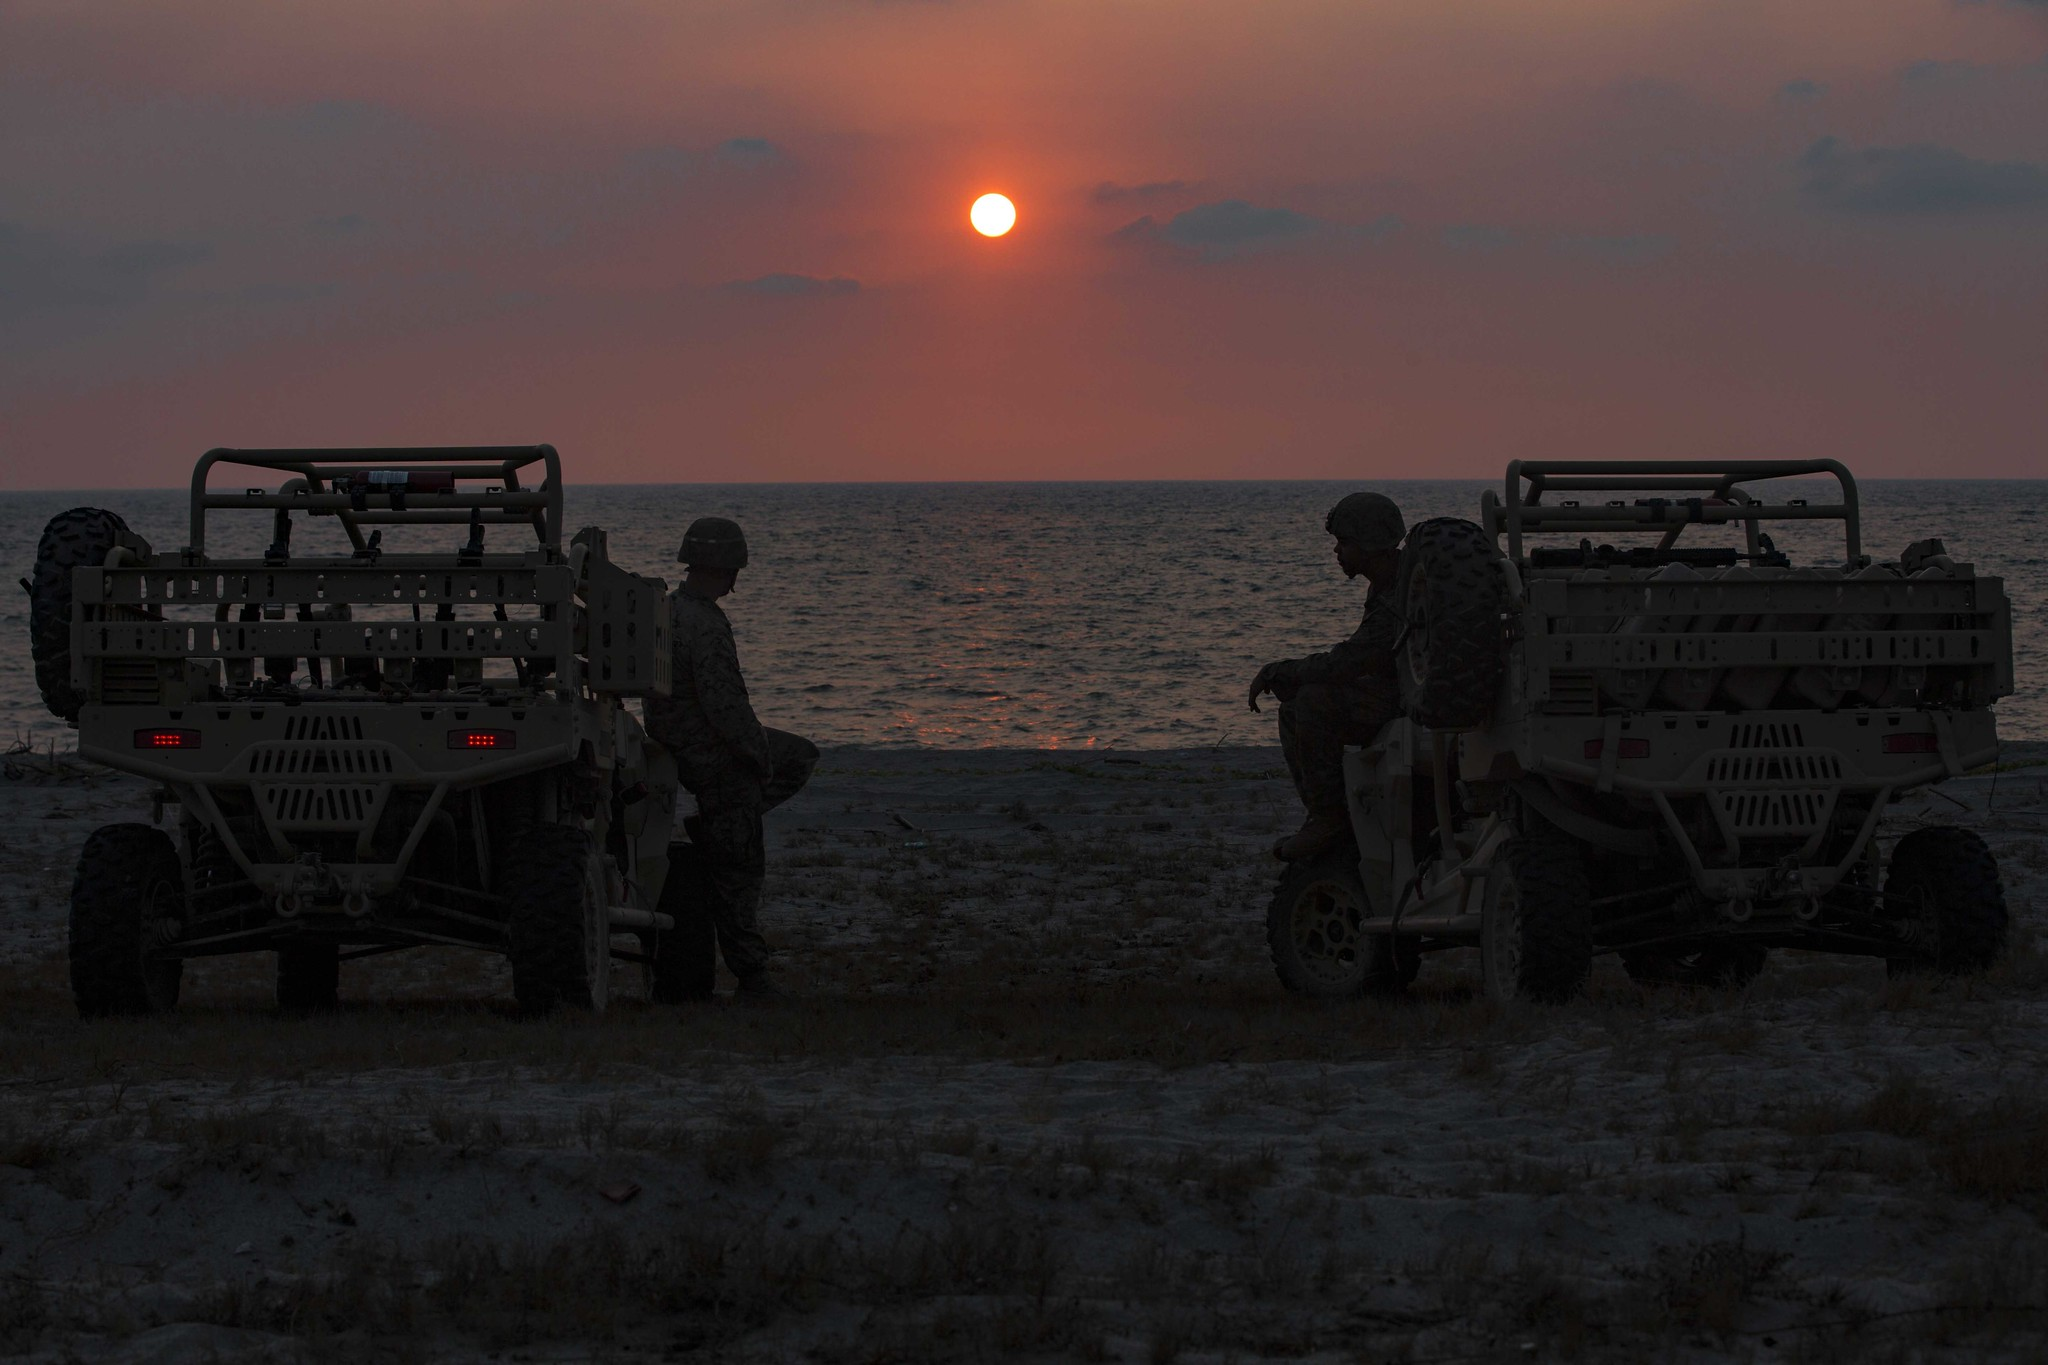 Marines sit on their Utility Terrain Vehicles observing the sunset April 7, 2019, after a training event at the Navy Education and Training Command, Philippines, during Exercise Balikatan. (Lance Cpl. Christian Ayers/Marine Corps)